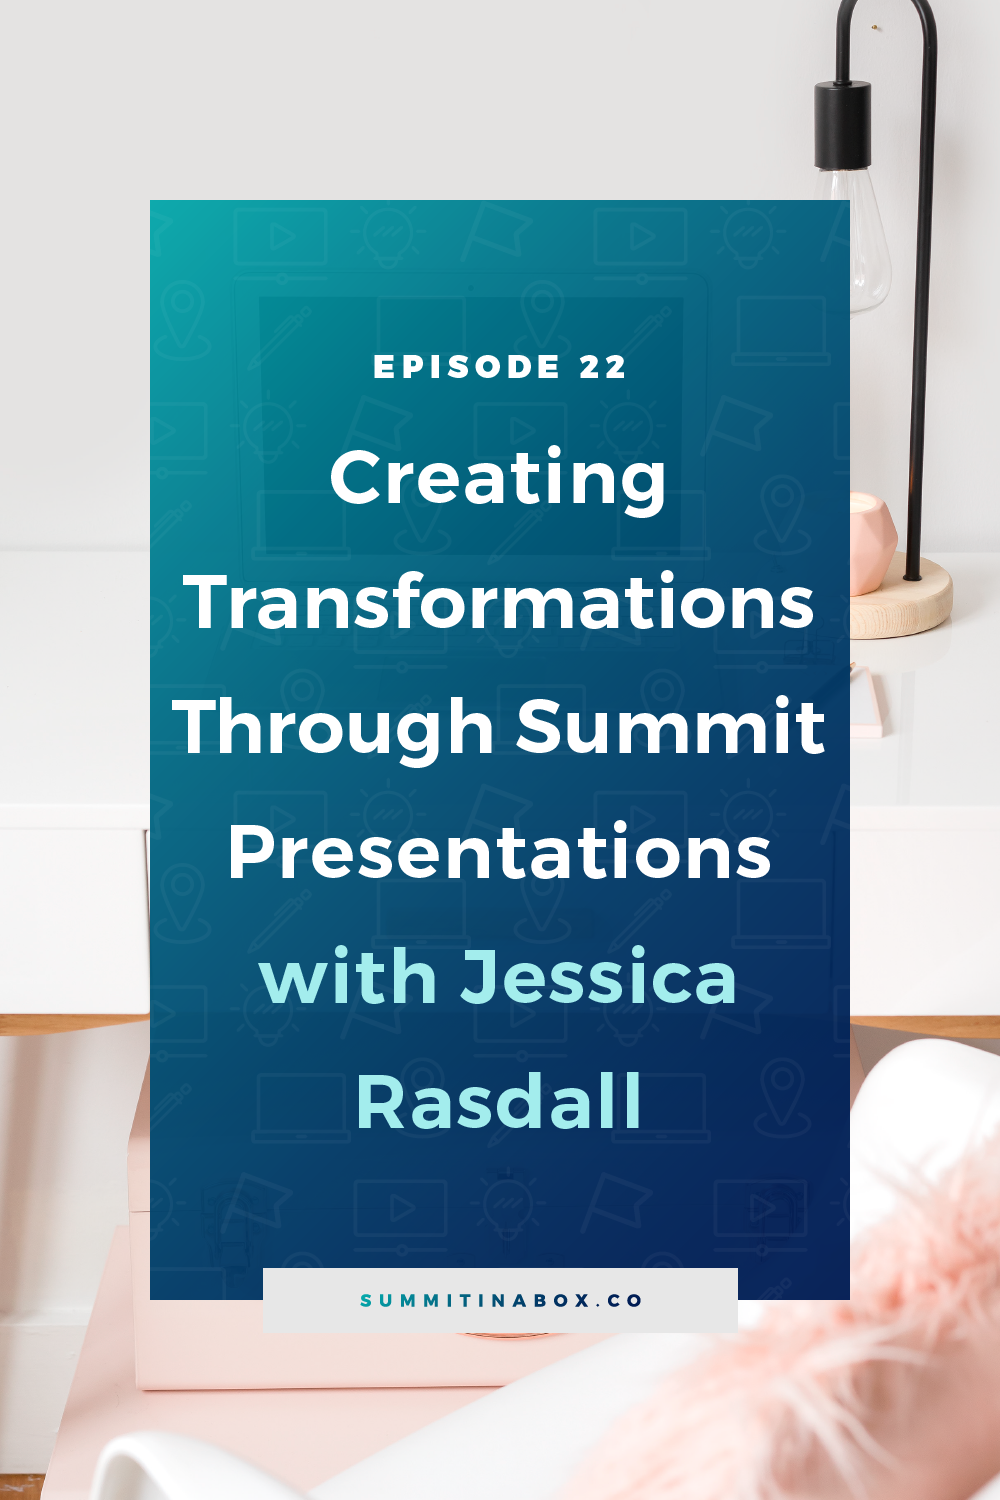 Your virtual summit presentations are full of great information, but do they create transformations? Here's how to create transformational summit presentations.